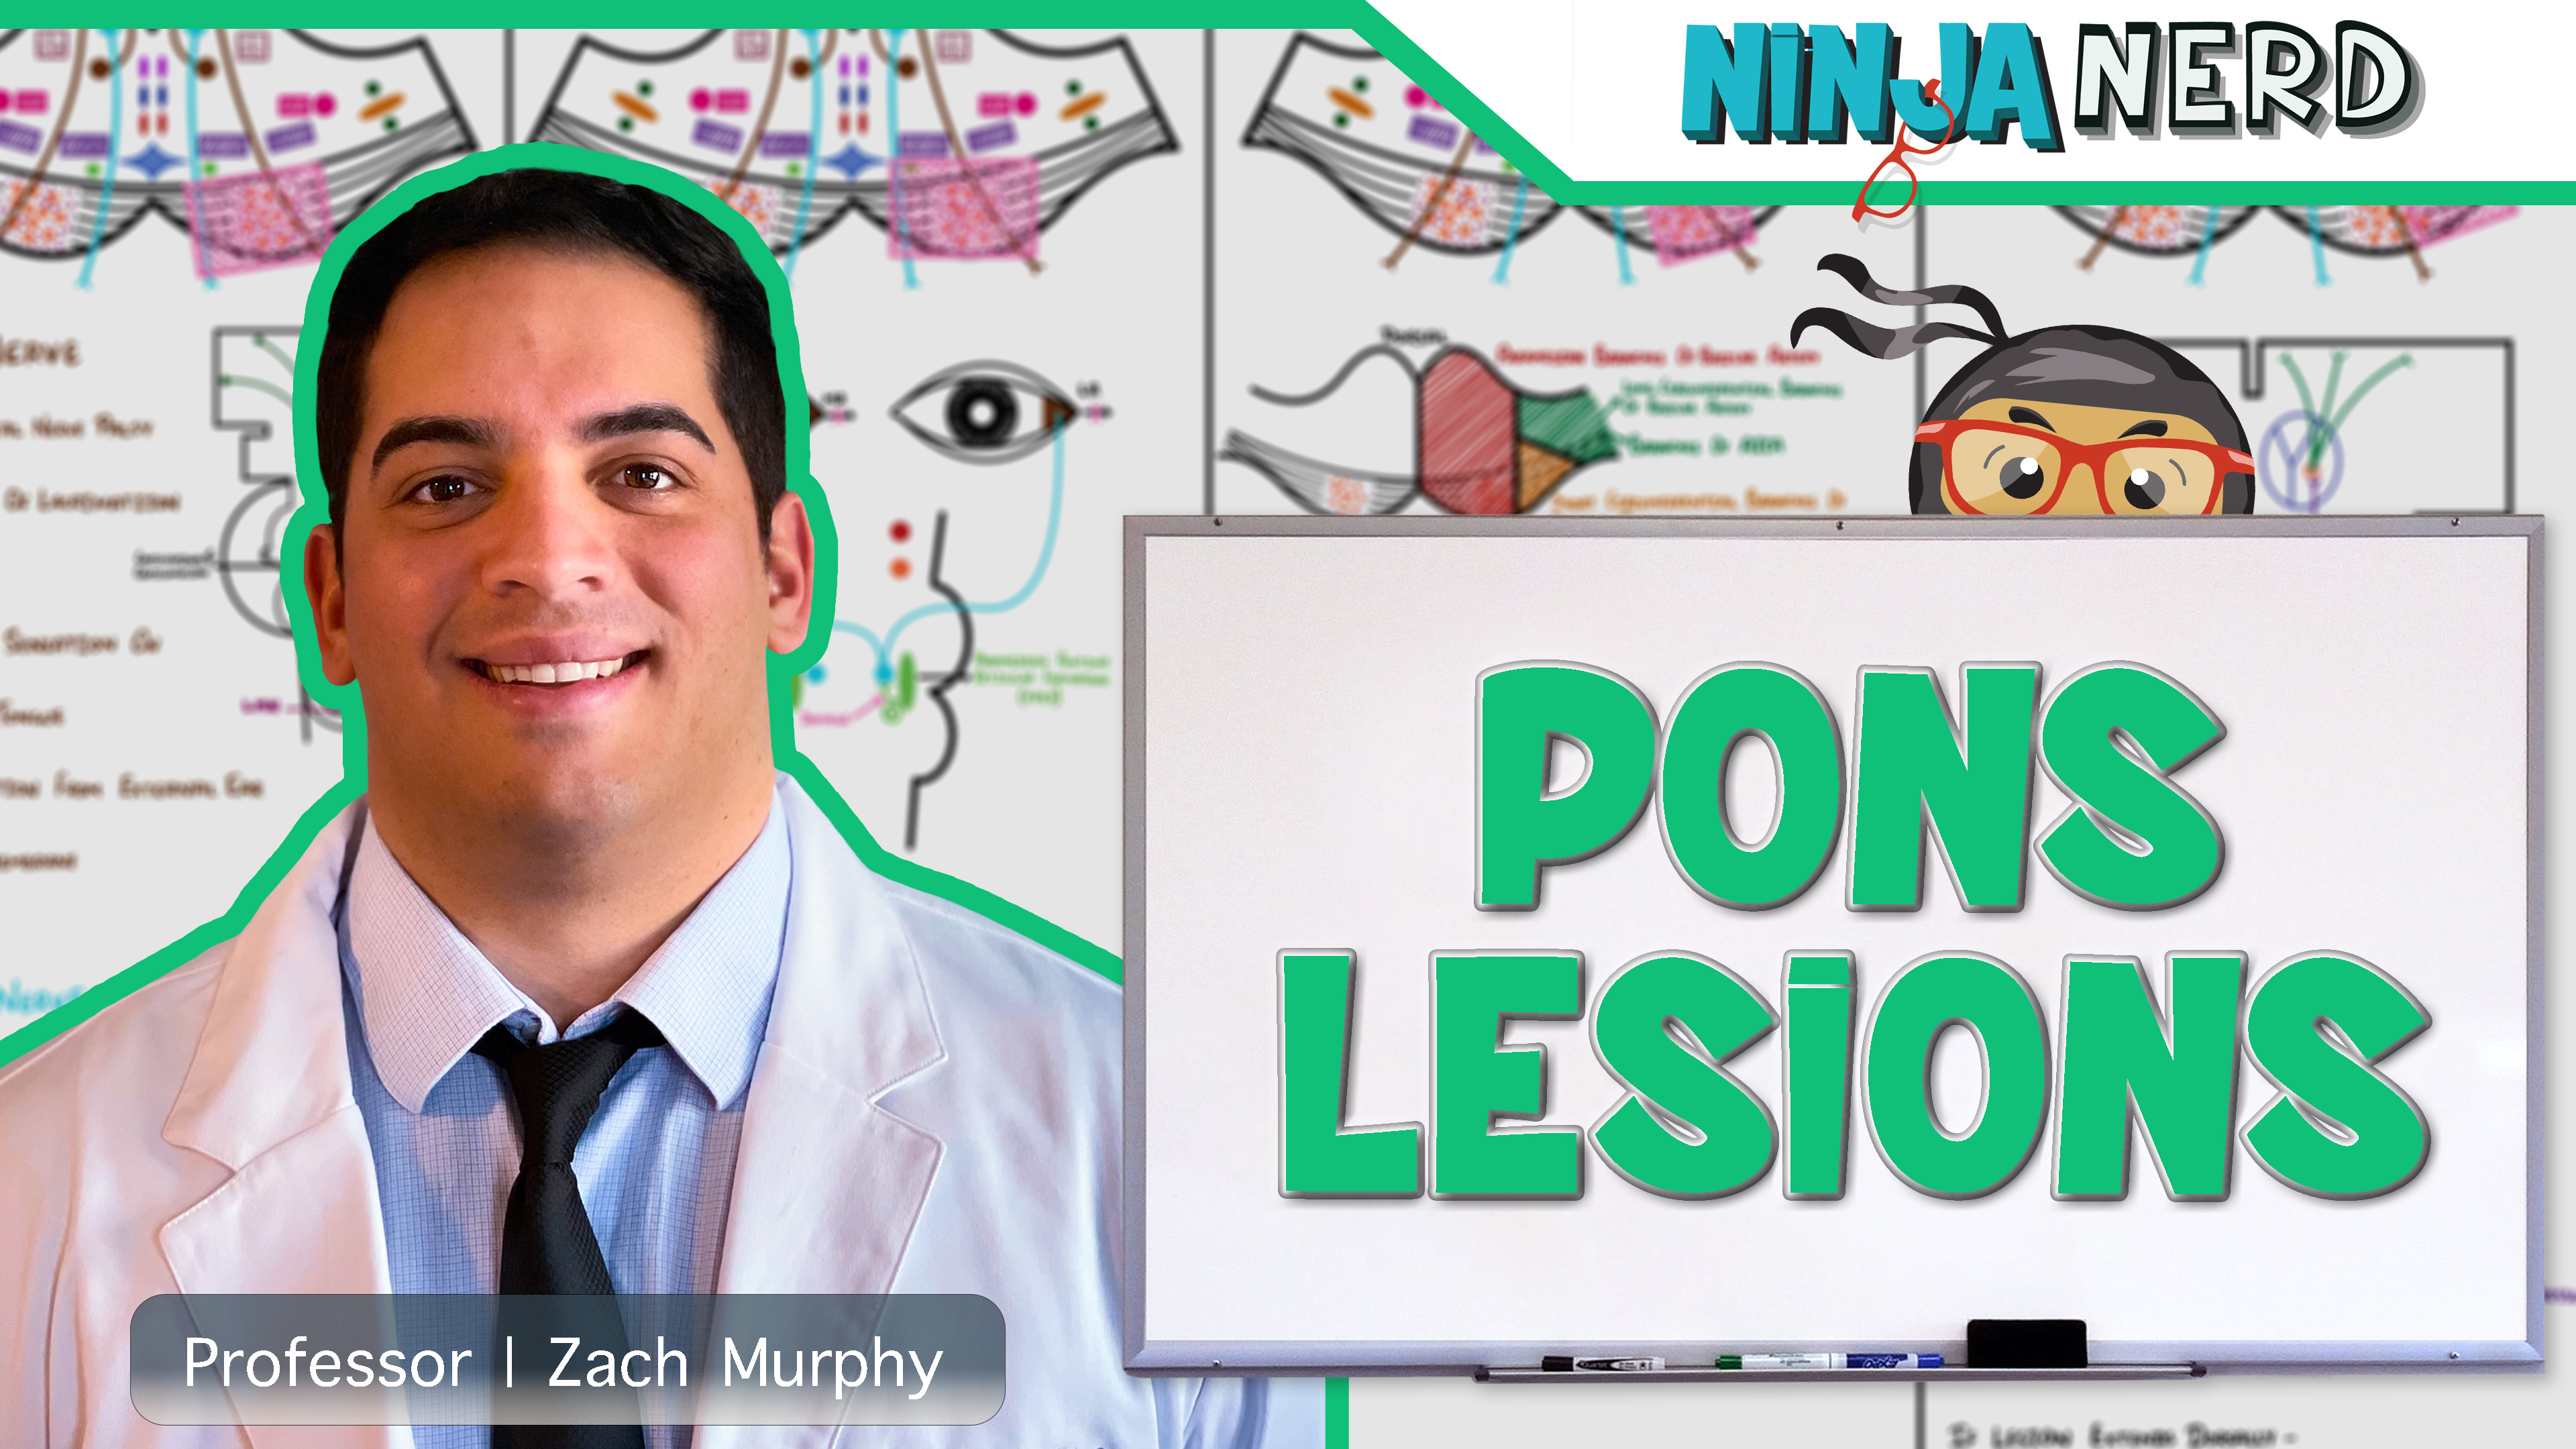 Pons Lesions